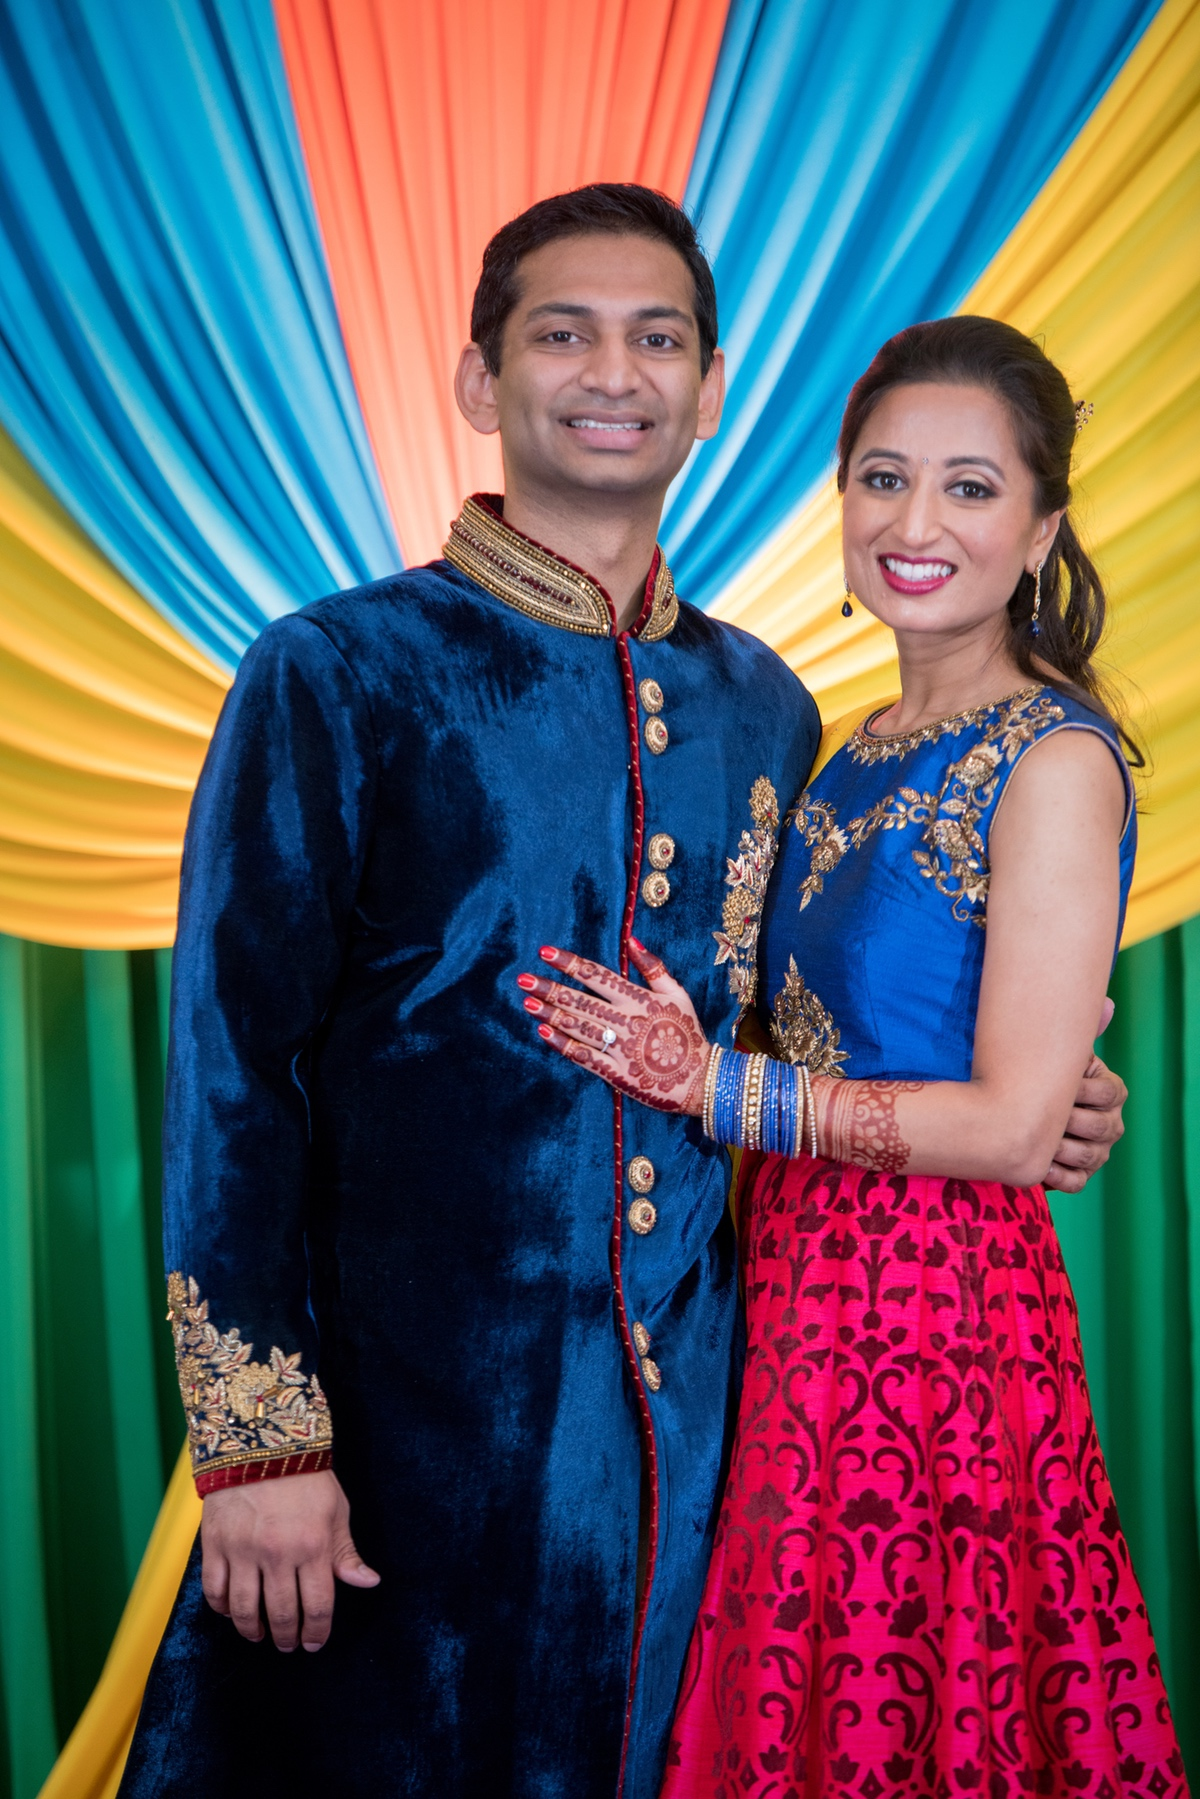 Le Cape Weddings - South Asian Wedding - Chicago Wedding Photographer P&V-9-2.jpg